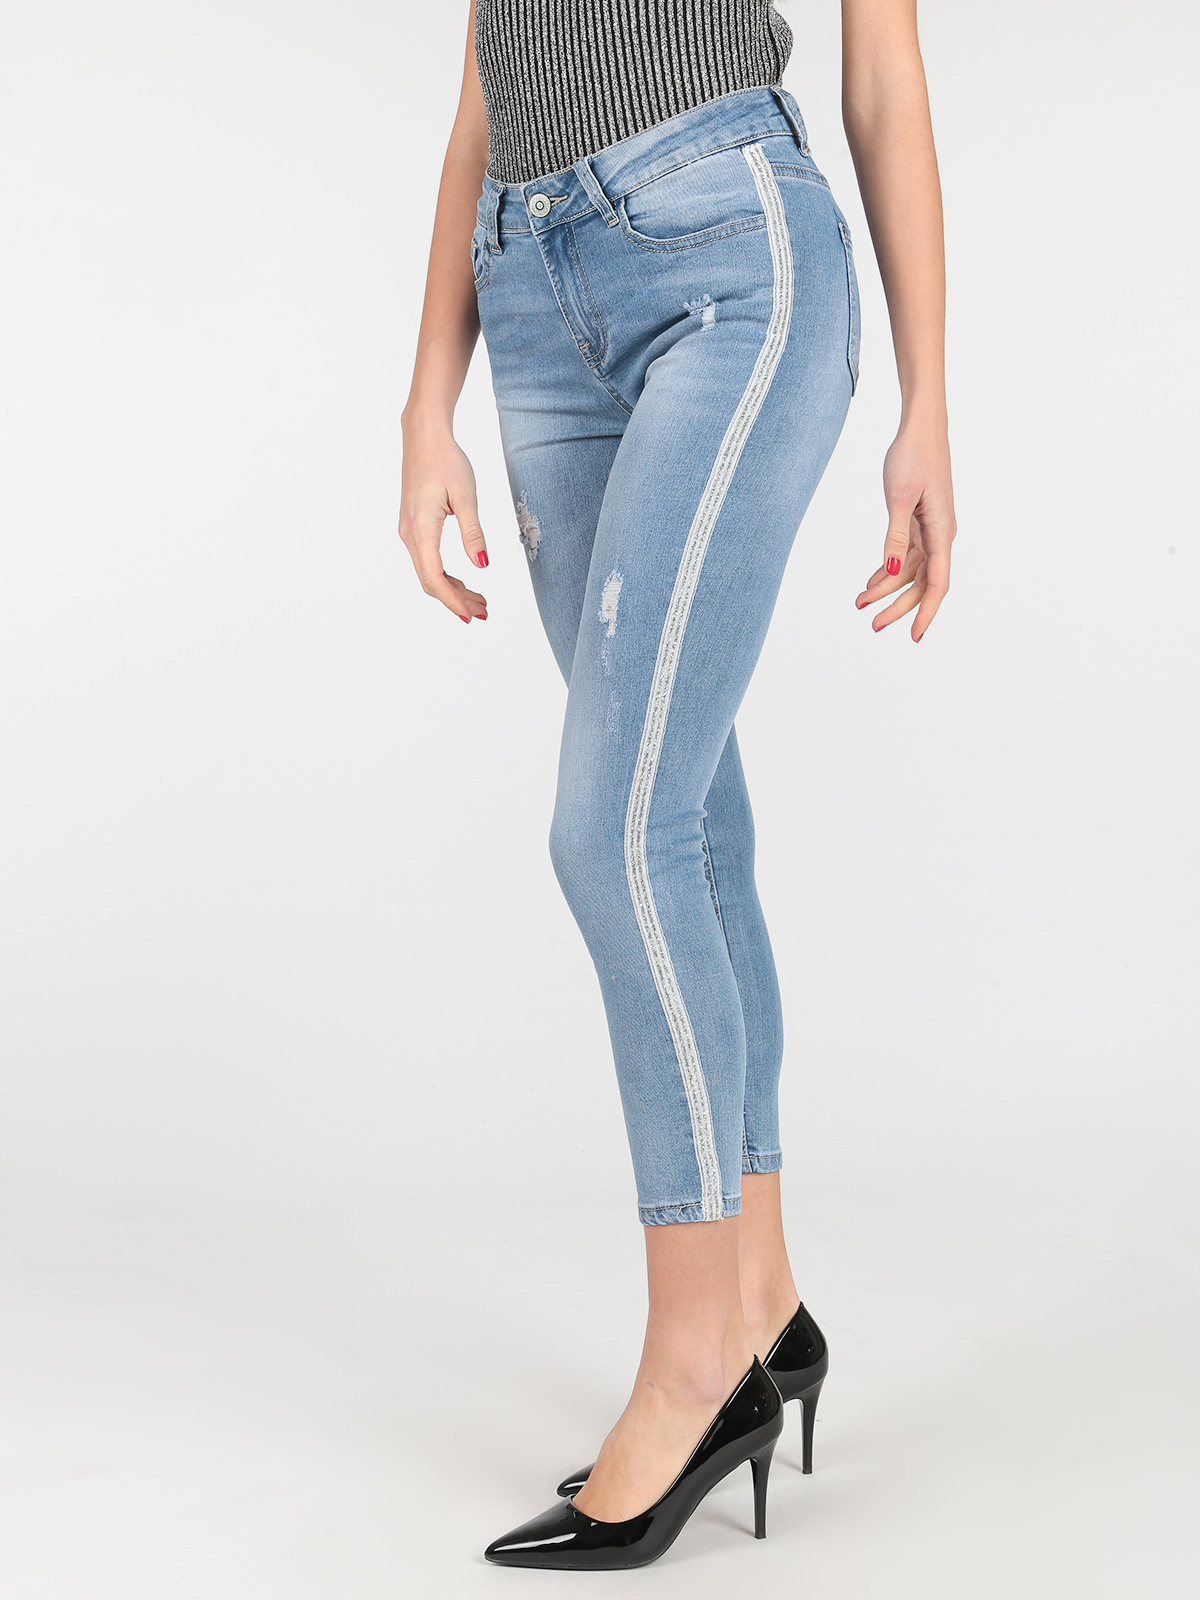 ICE & LEMON Light Clor Jeans Woman High Waist Elastic Ripped Side Stripe Slim Pencil Spring Pants